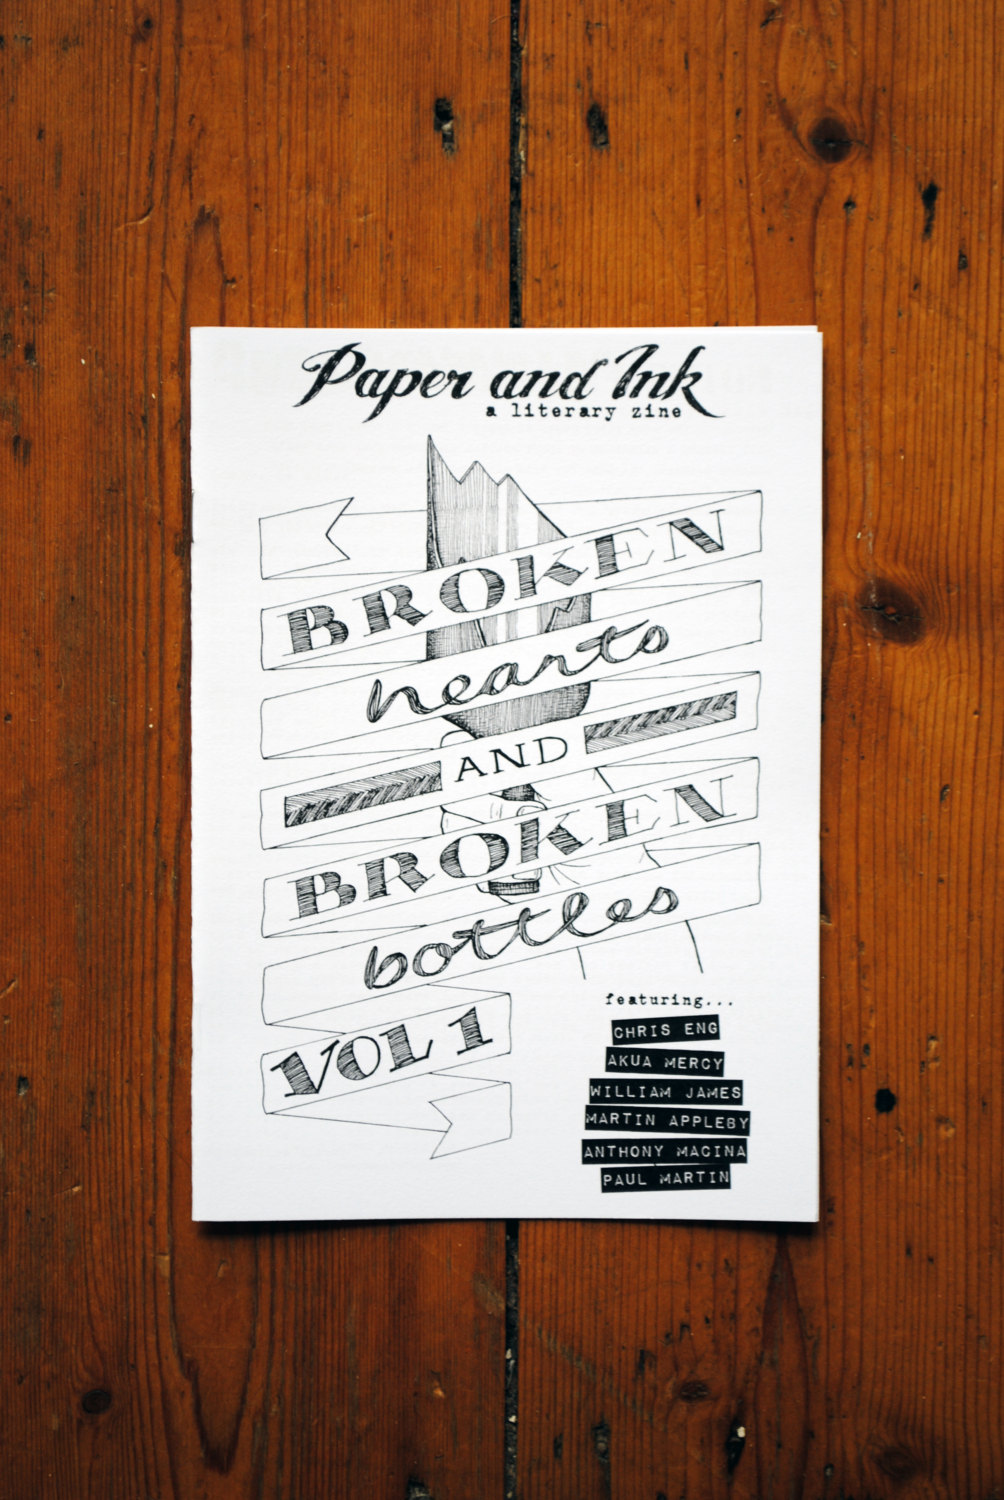 https://www.etsy.com/listing/125474469/paper-and-ink-a-literary-zine-issue-1